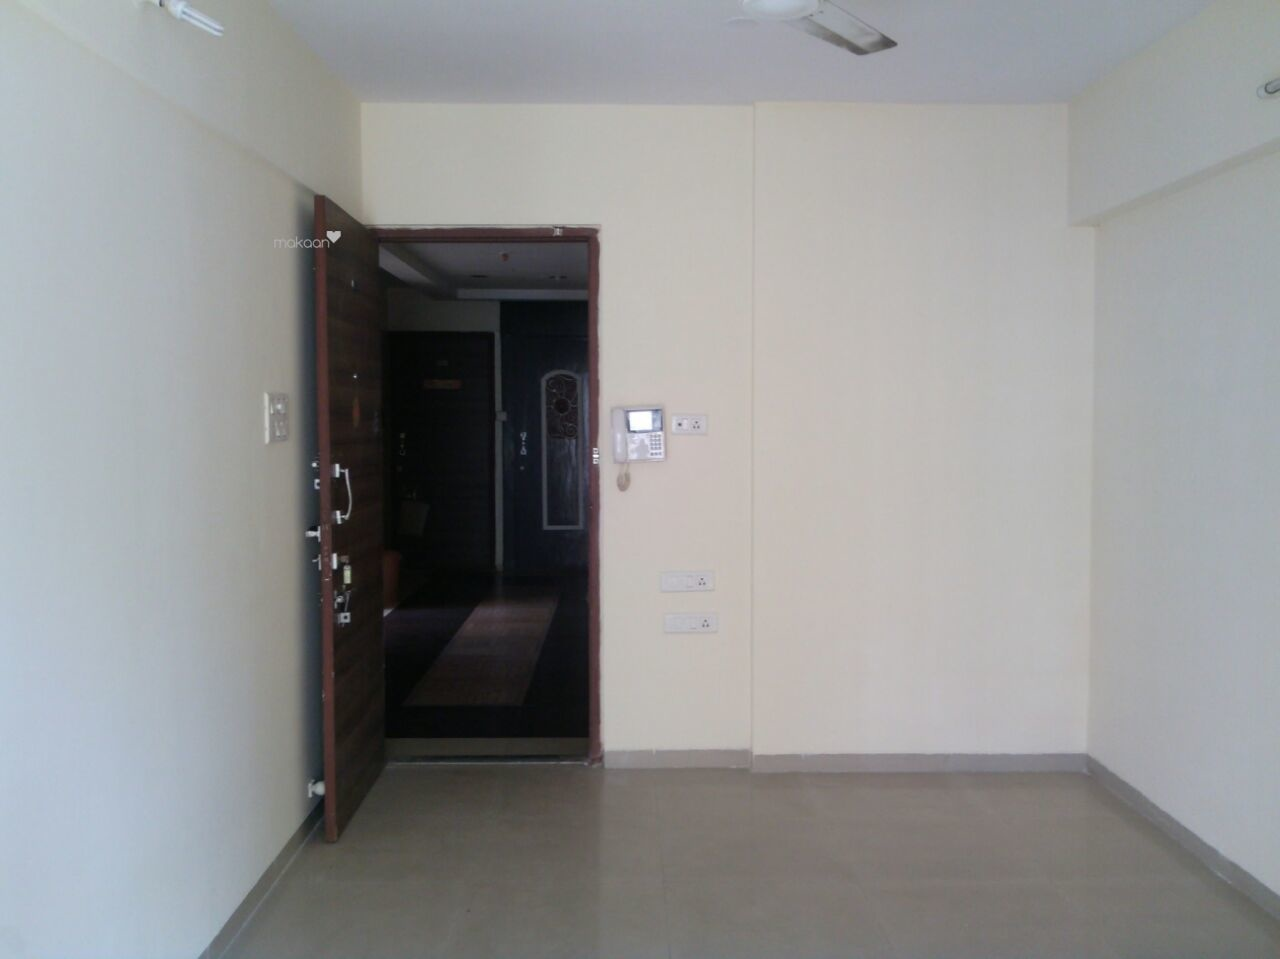 650 sq ft 1BHK 1BHK+1T (650 sq ft) Property By Bhoomi Enterprises In Project, Kamothe